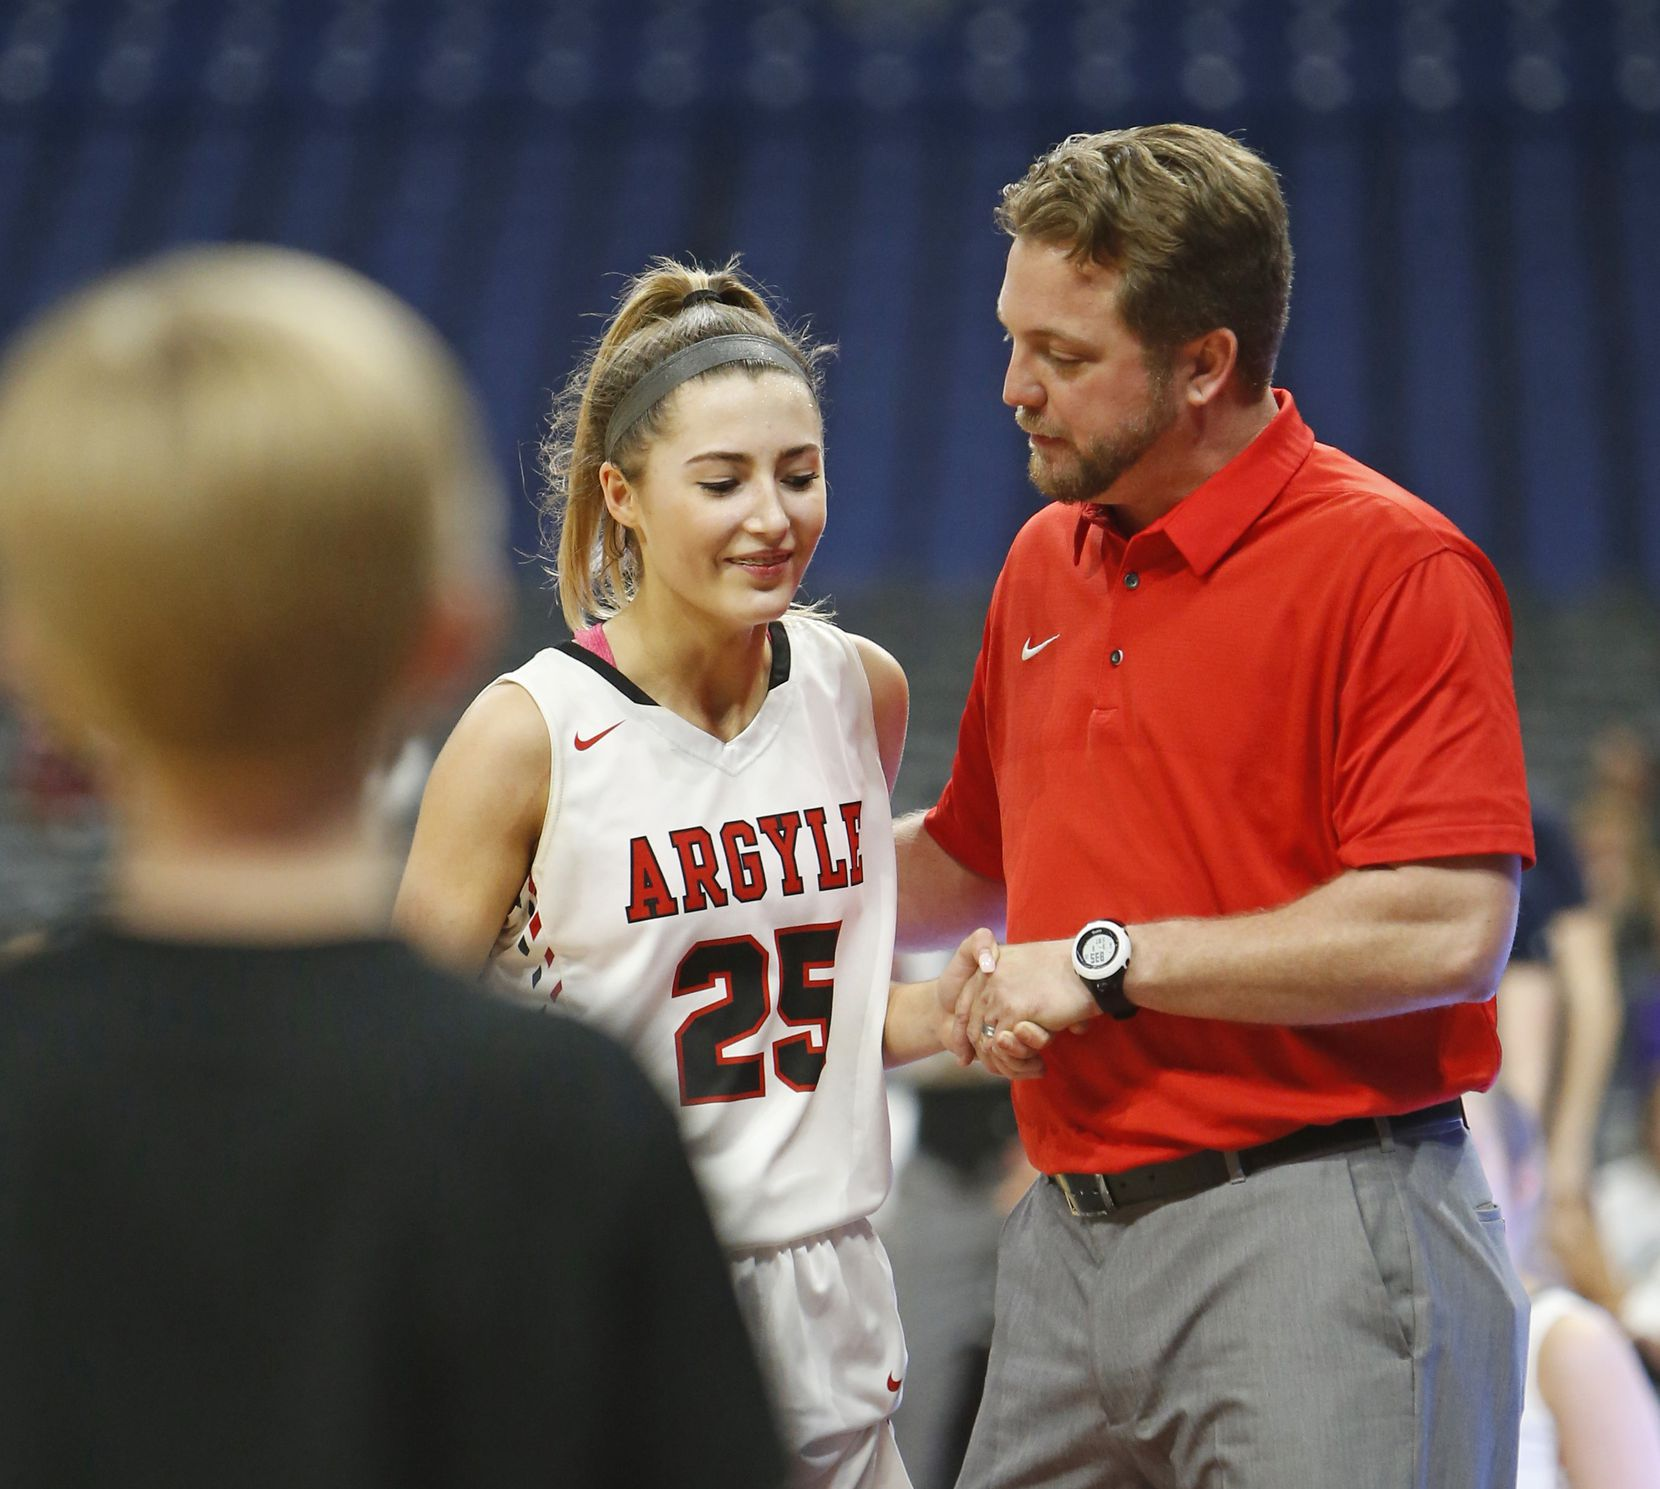 Argyle head coach Chance Westmoreland congratulates Argyle's Sydney Standifer in closing seconds. Argyle v San Antonio Veterans Memorial in a UIL girls basketball Class 4A on Saturday, March 3, 2018 at the Alamodome.  (Ronald Cortes/Special Contributor)